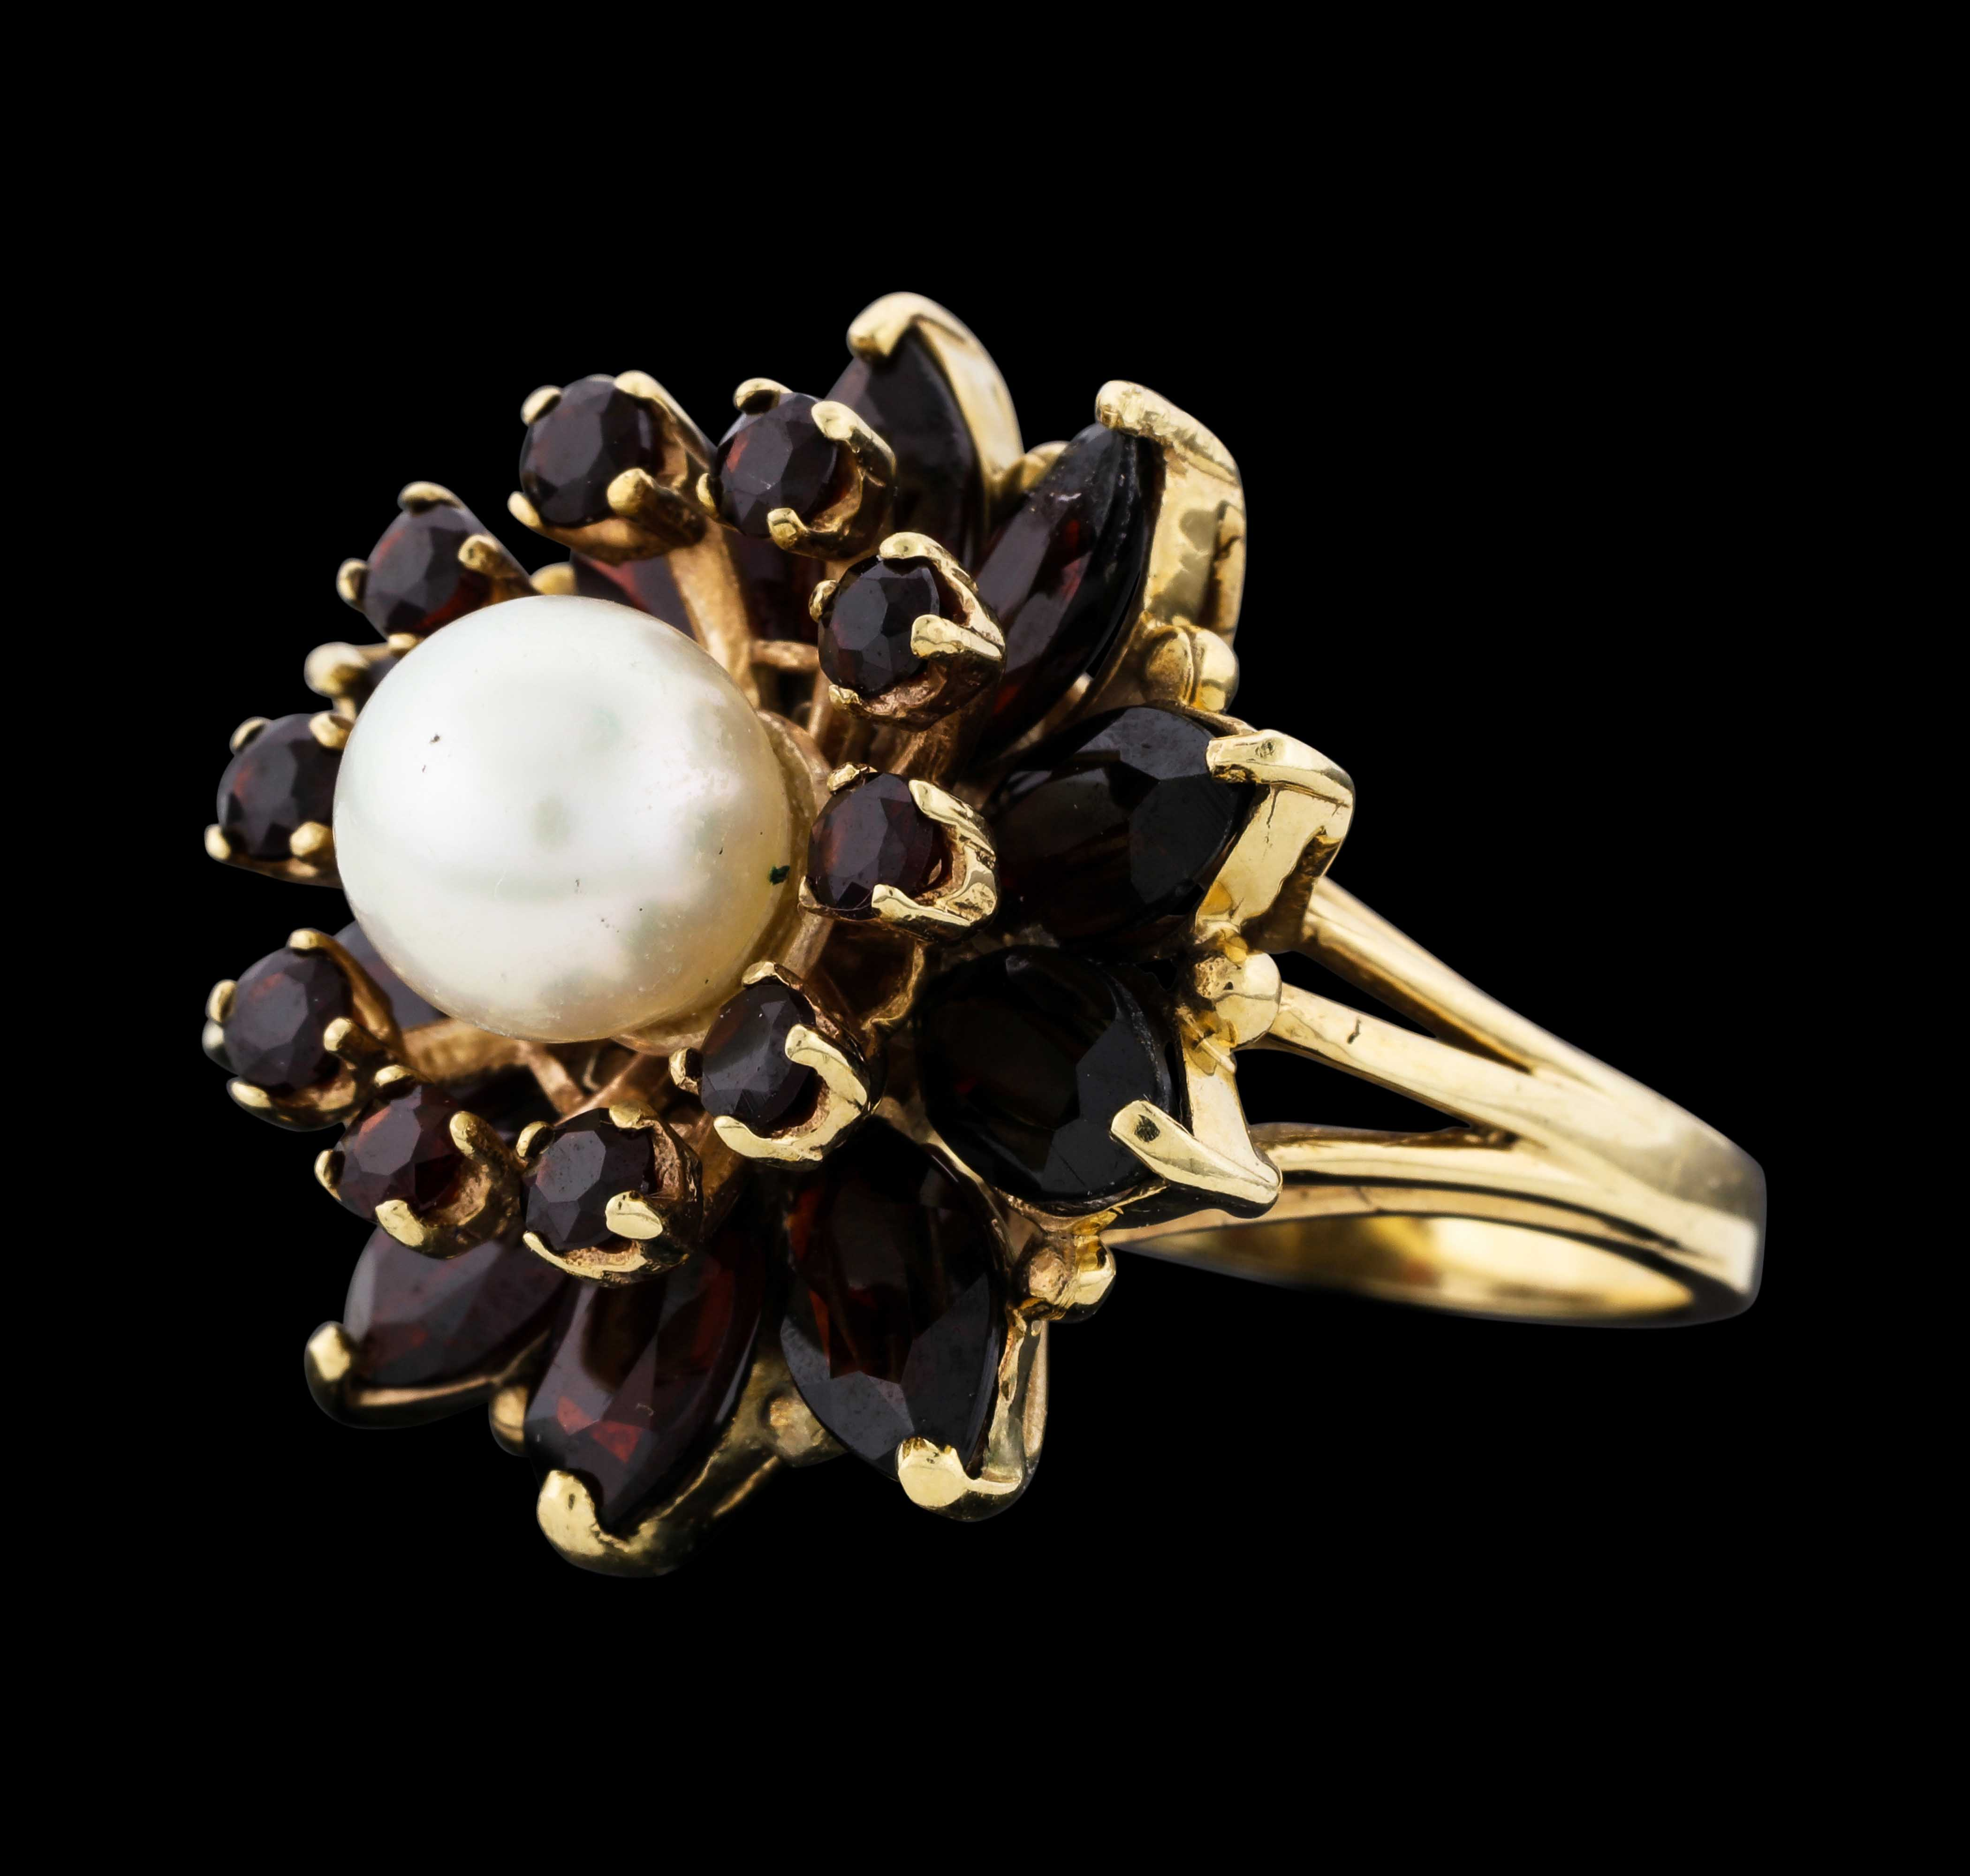 14k yellow gold 1040 grams garnet flower ring with pearl center 14k yellow gold 1040 grams garnet flower ring with pearl center mightylinksfo